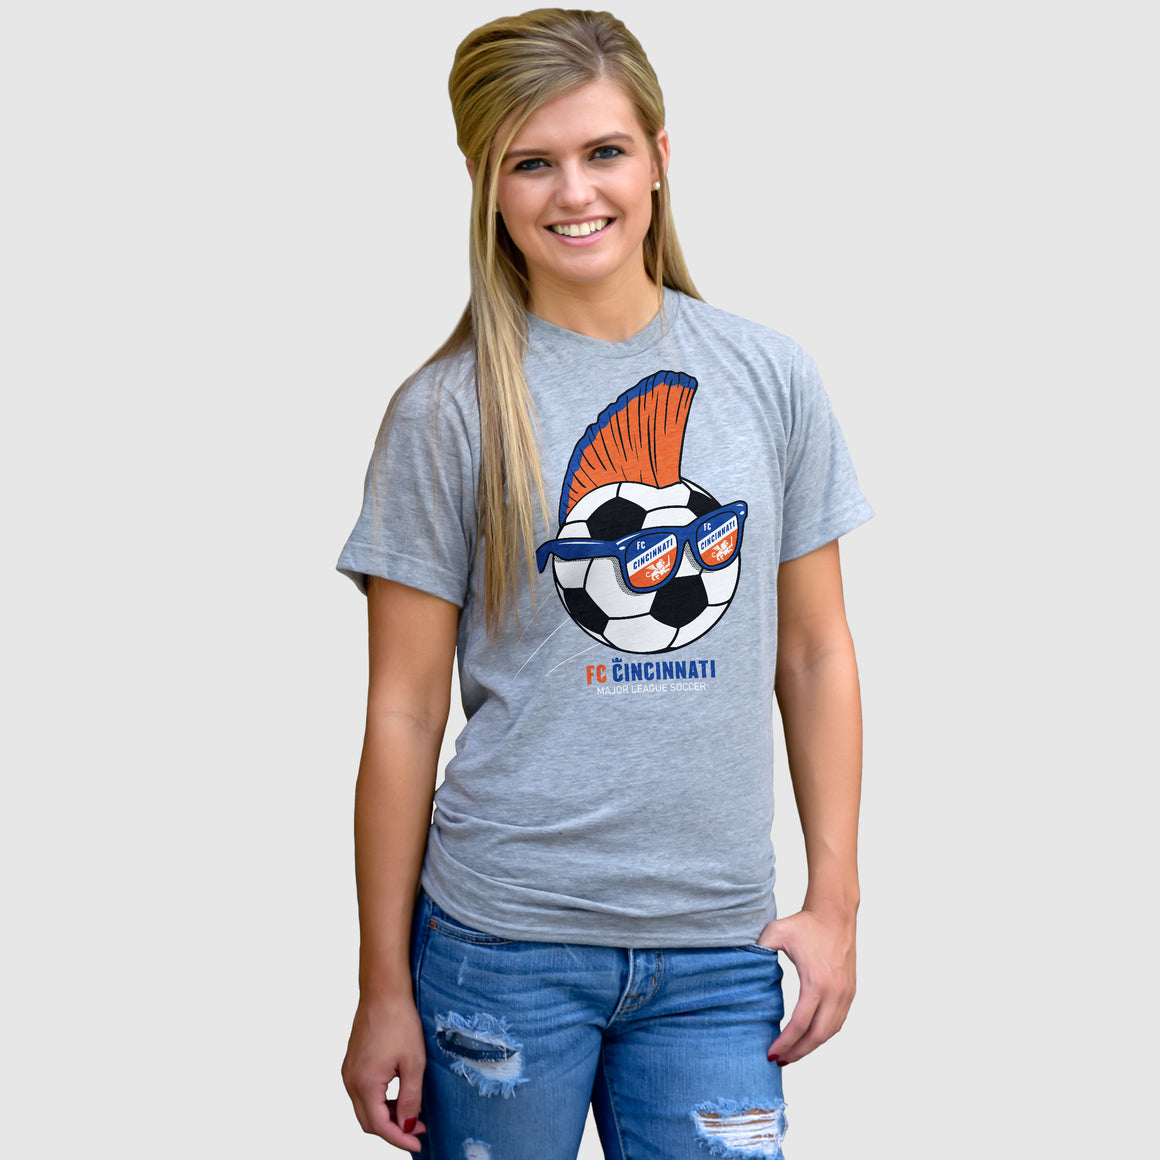 FC Cincinnati Mohawk Soccer Ball - Cincy Shirts